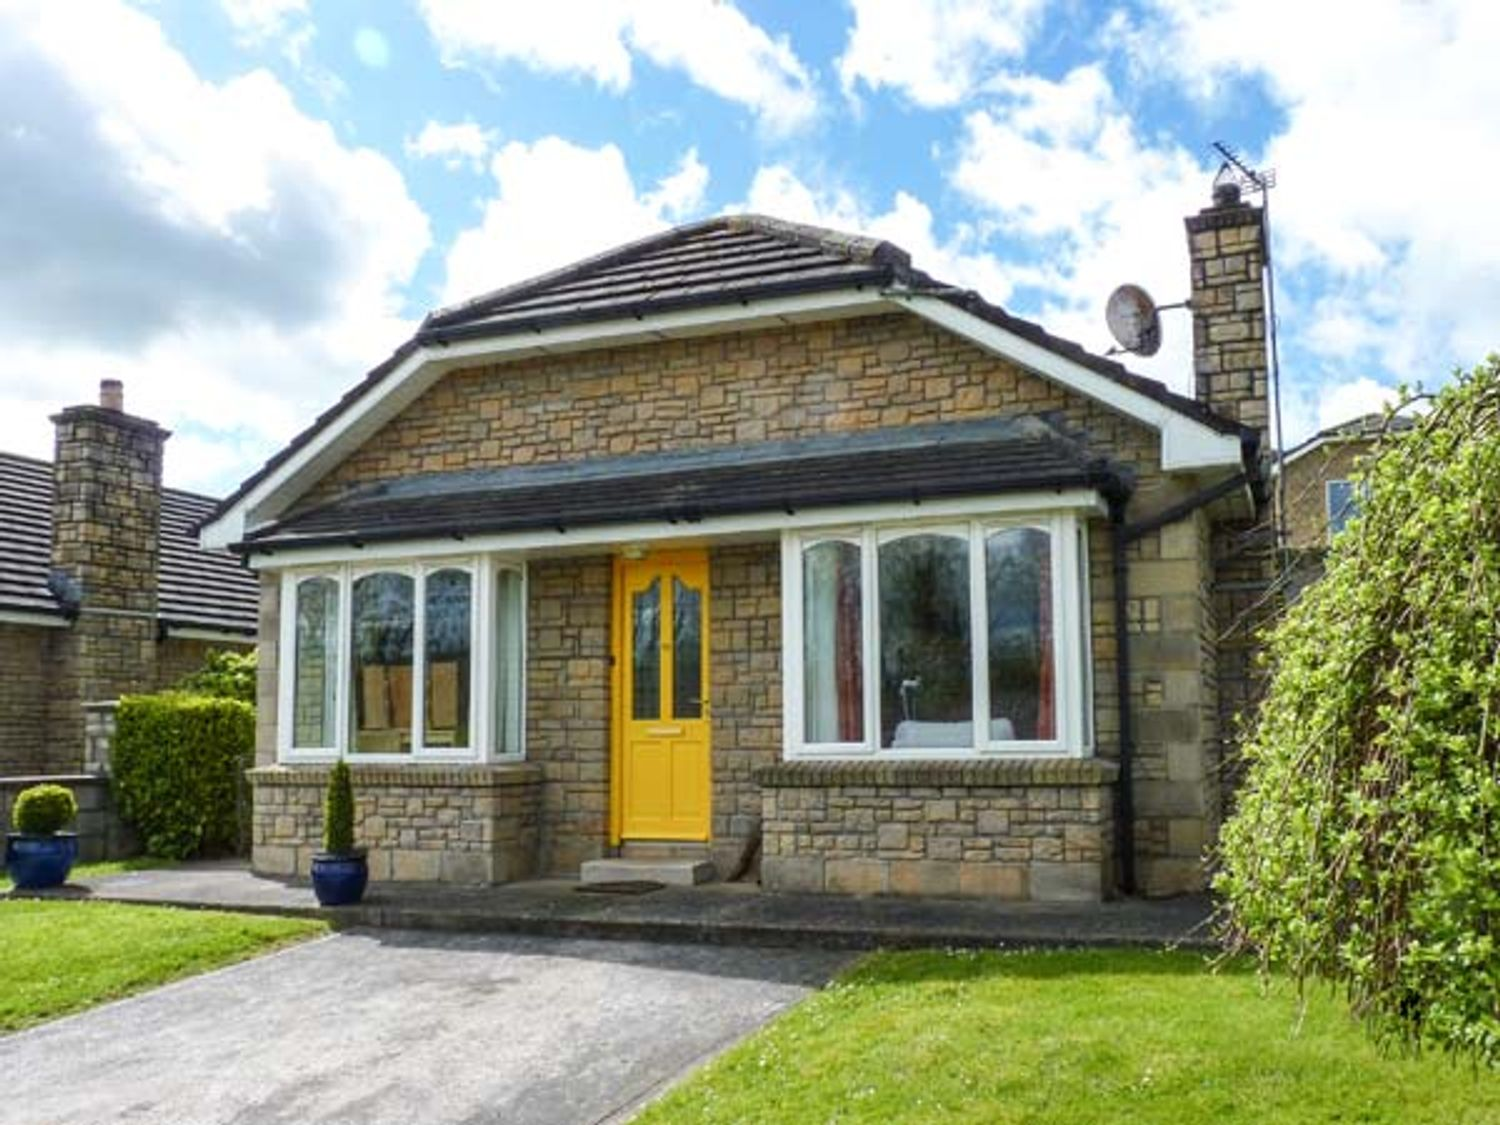 24 Village View - South Ireland - 923621 - photo 1